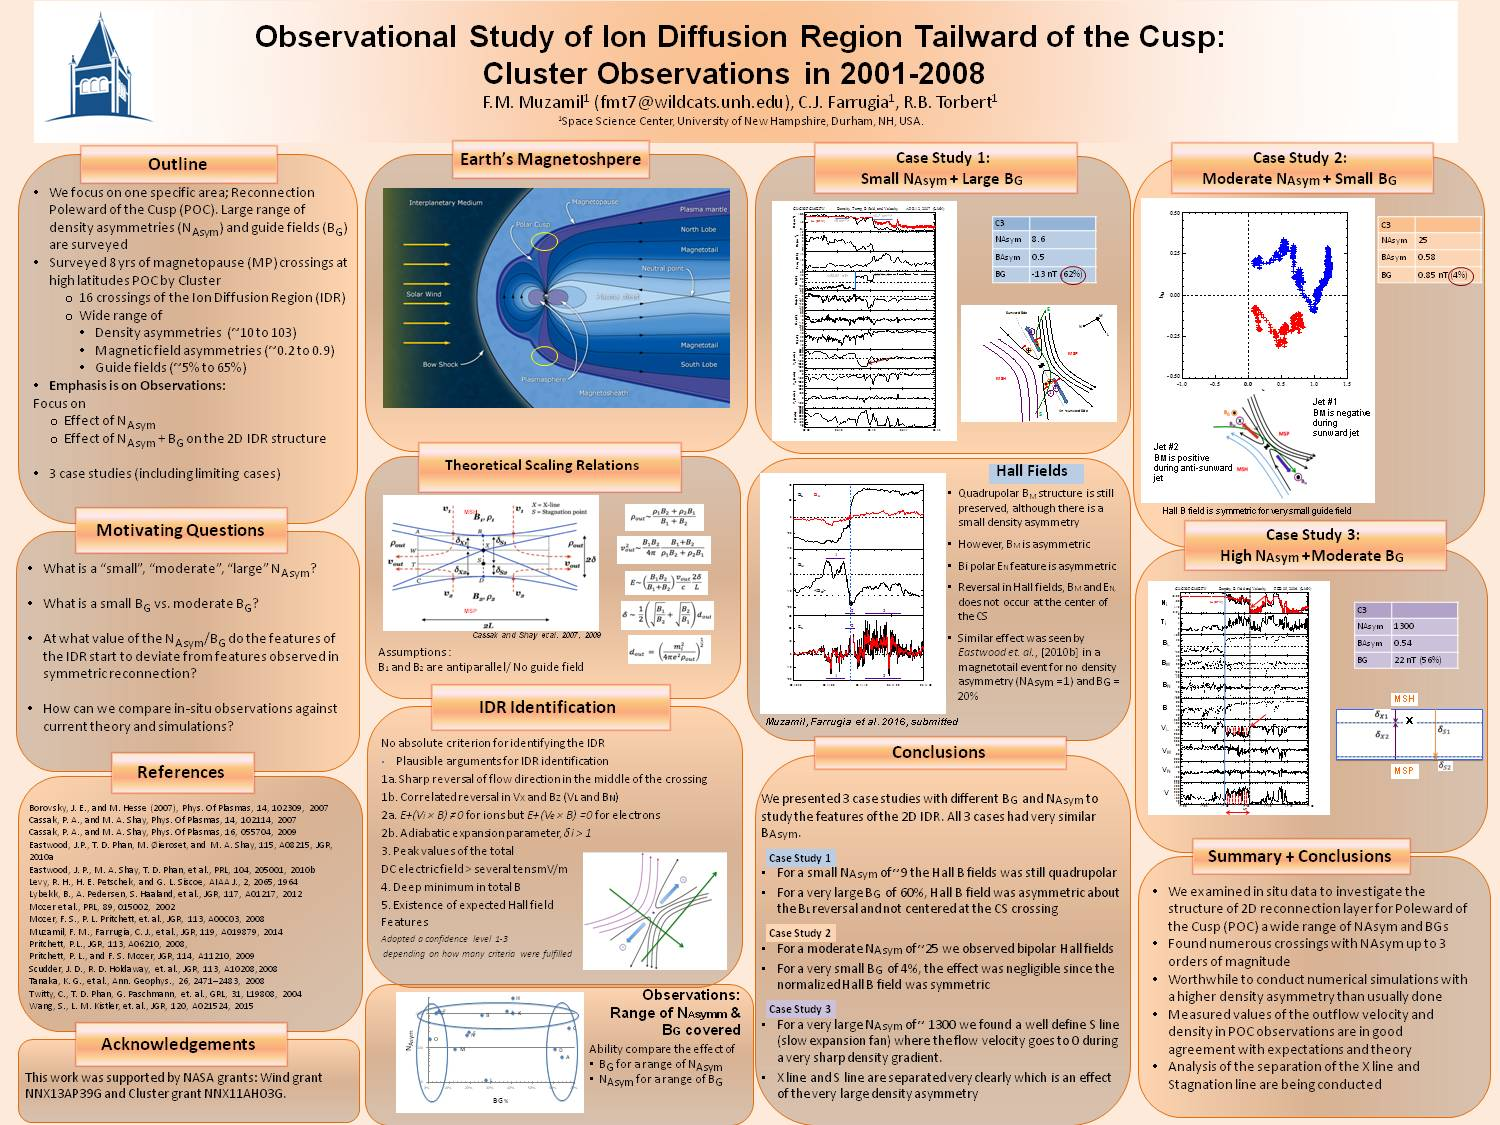 Observational Study Of Ion Diffusion Region Tailward Of The Cusp: Cluster Observations In 2001-2008  by Muzleena